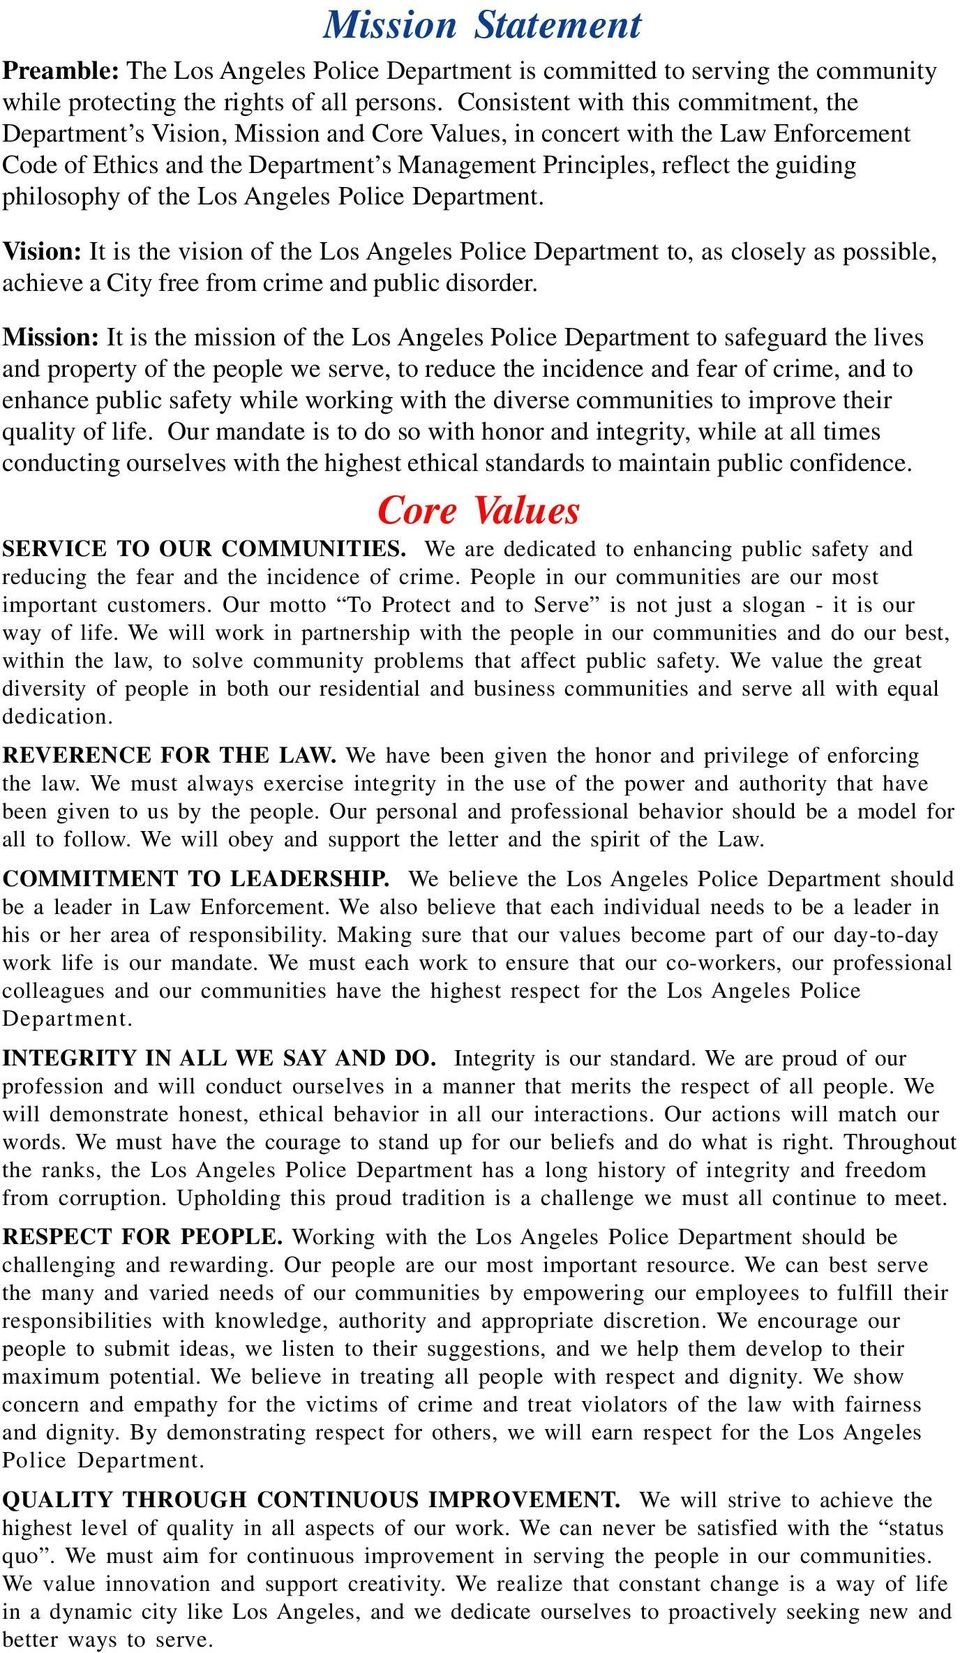 philosophy of the Los Angeles Police Department. Vision: It is the vision of the Los Angeles Police Department to, as closely as possible, achieve a City free from crime and public disorder.